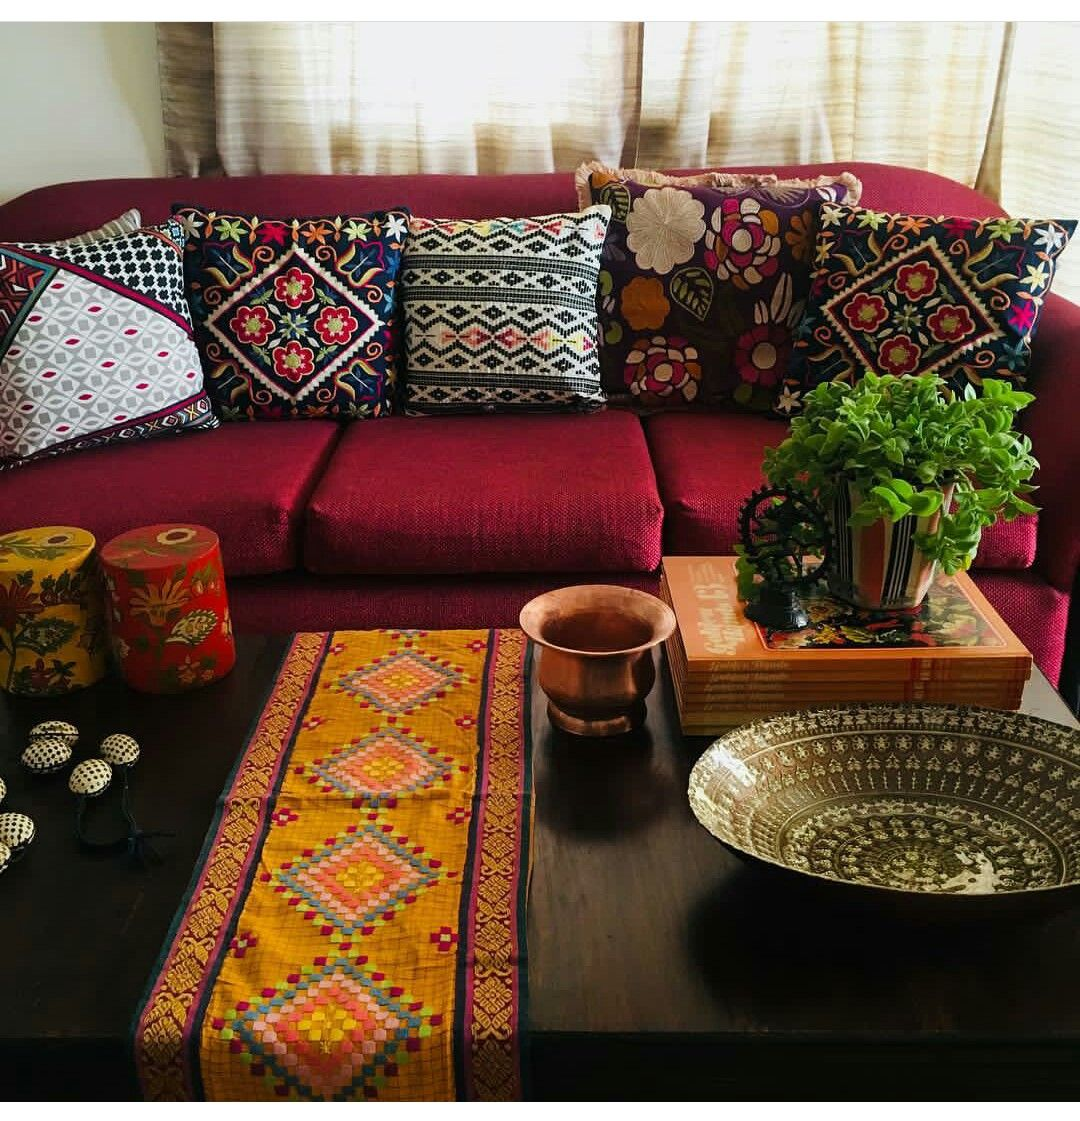 I Love How Low The Furniture Is And The Red Couch Red Sofa Living Room Red Sofa Living Indian Home Decor #red #sofa #decorating #living #room